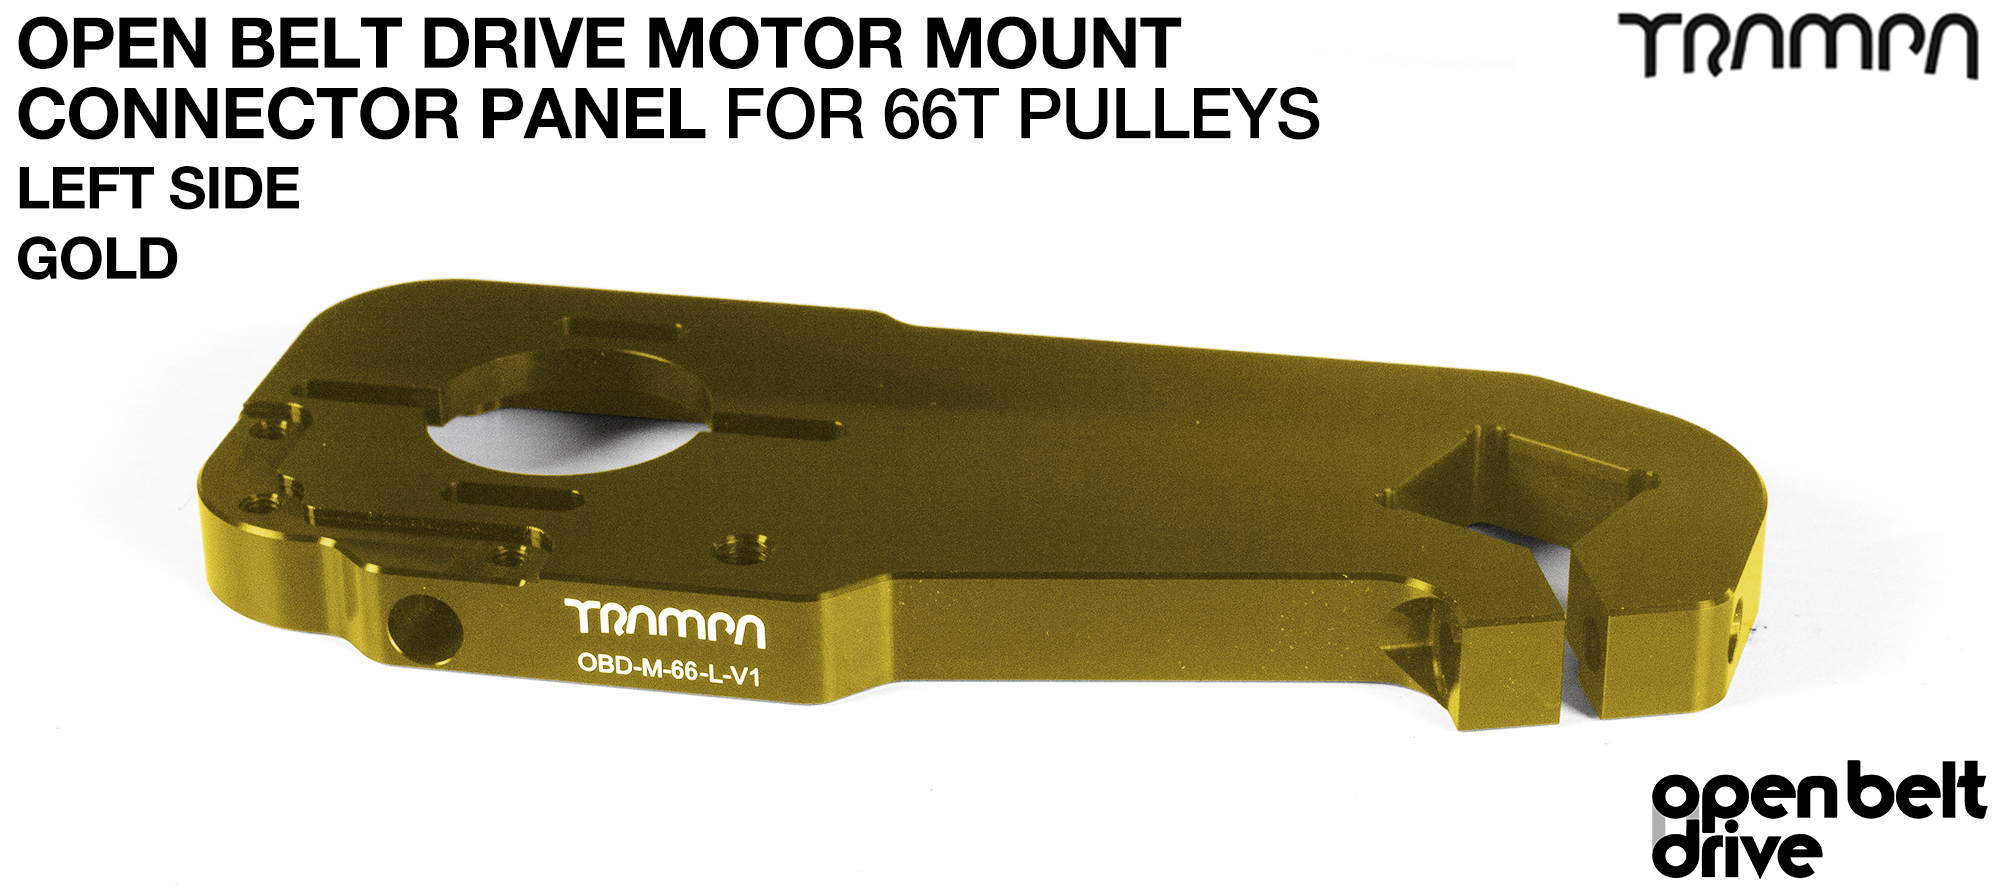 OBD Motor Mount Connector Panel for 66 tooth Pulleys - REGULAR - GOLD